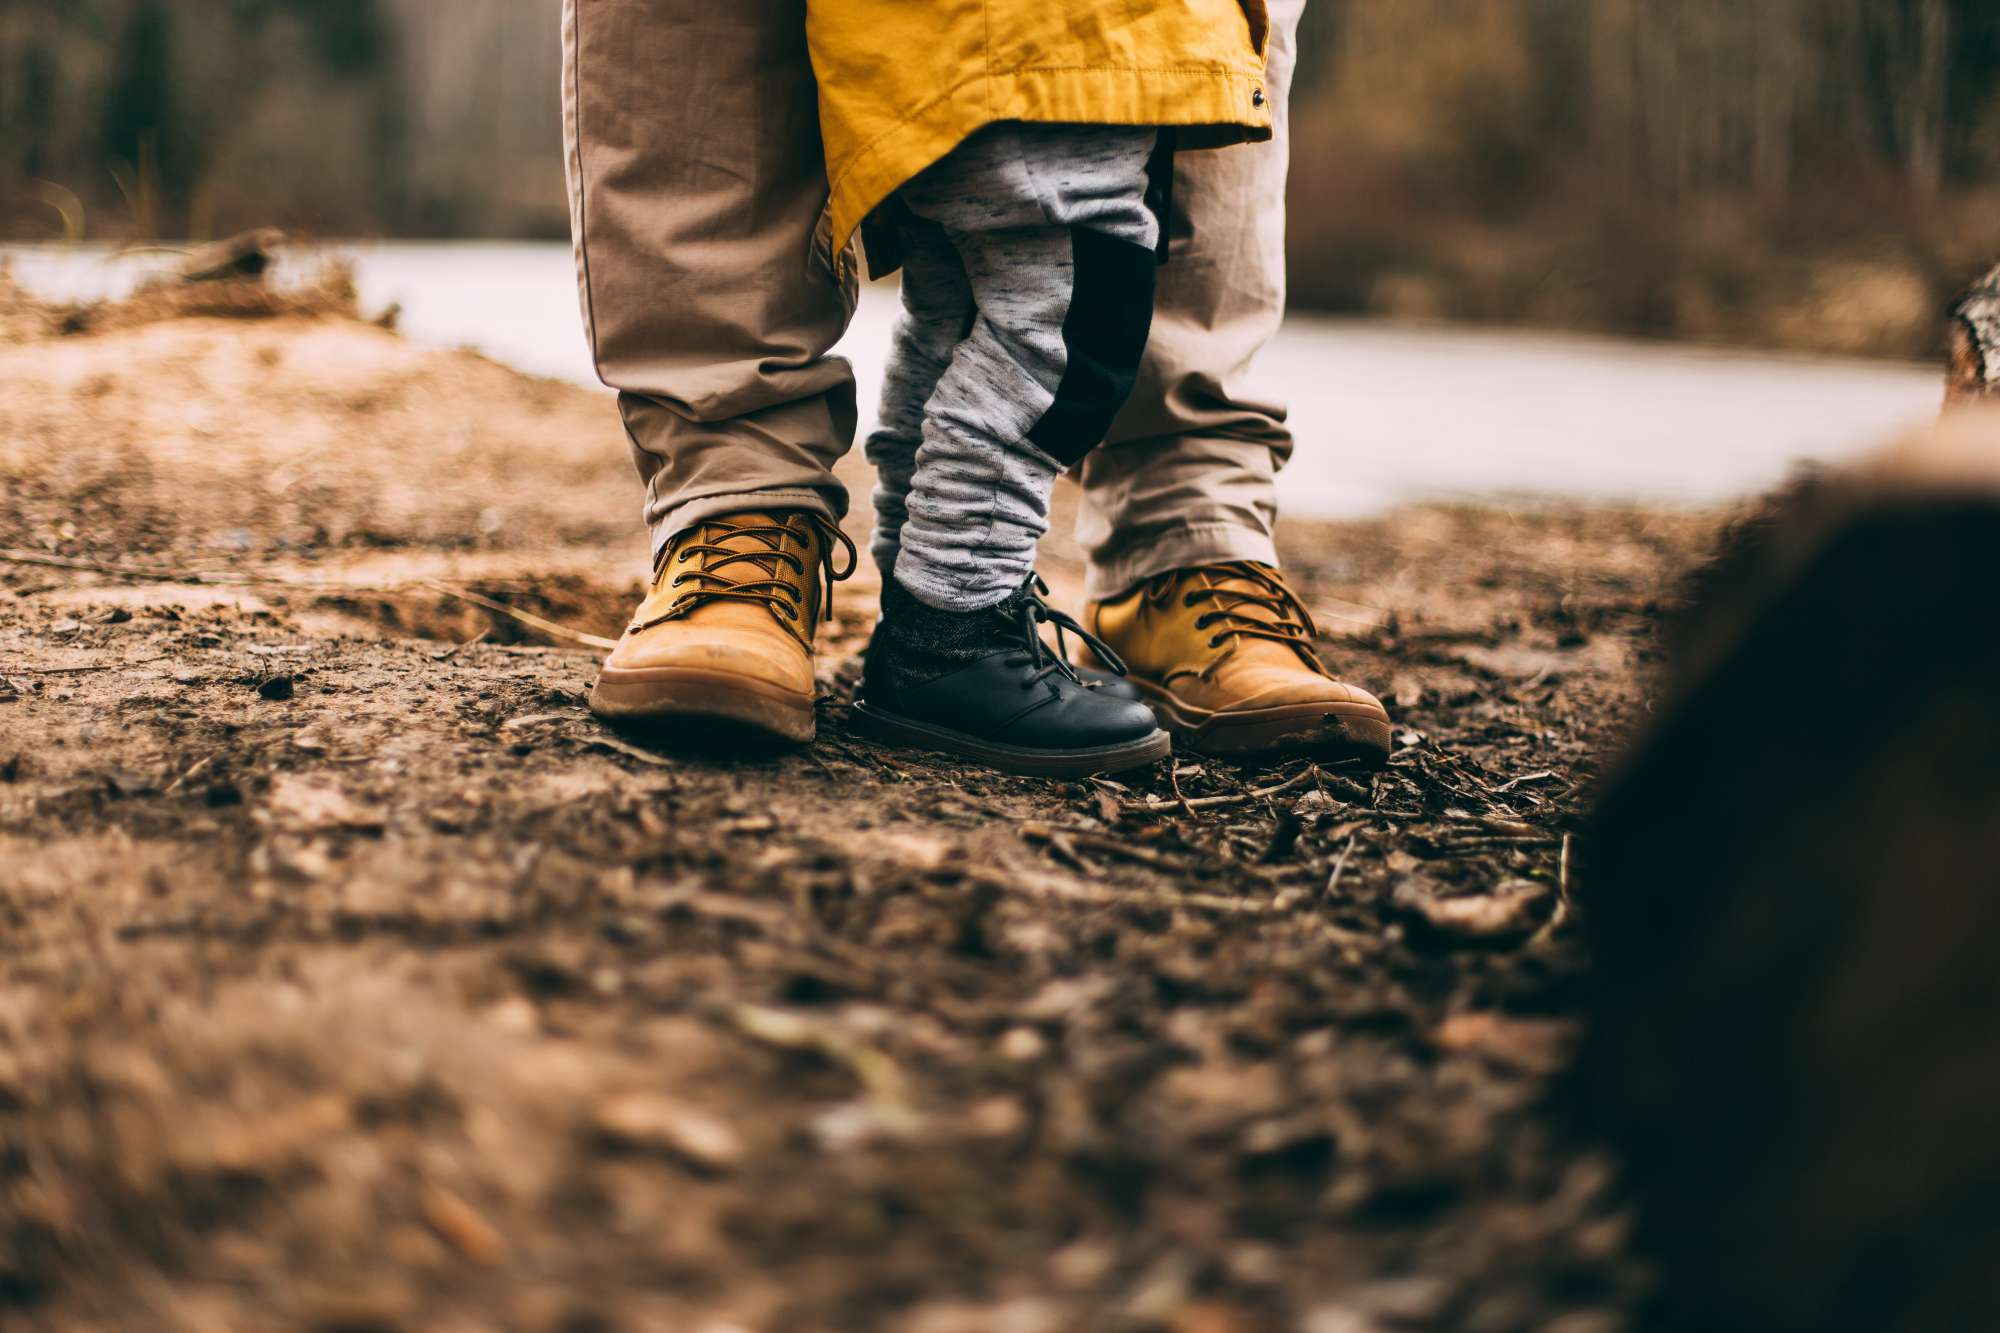 The boots of a father and son